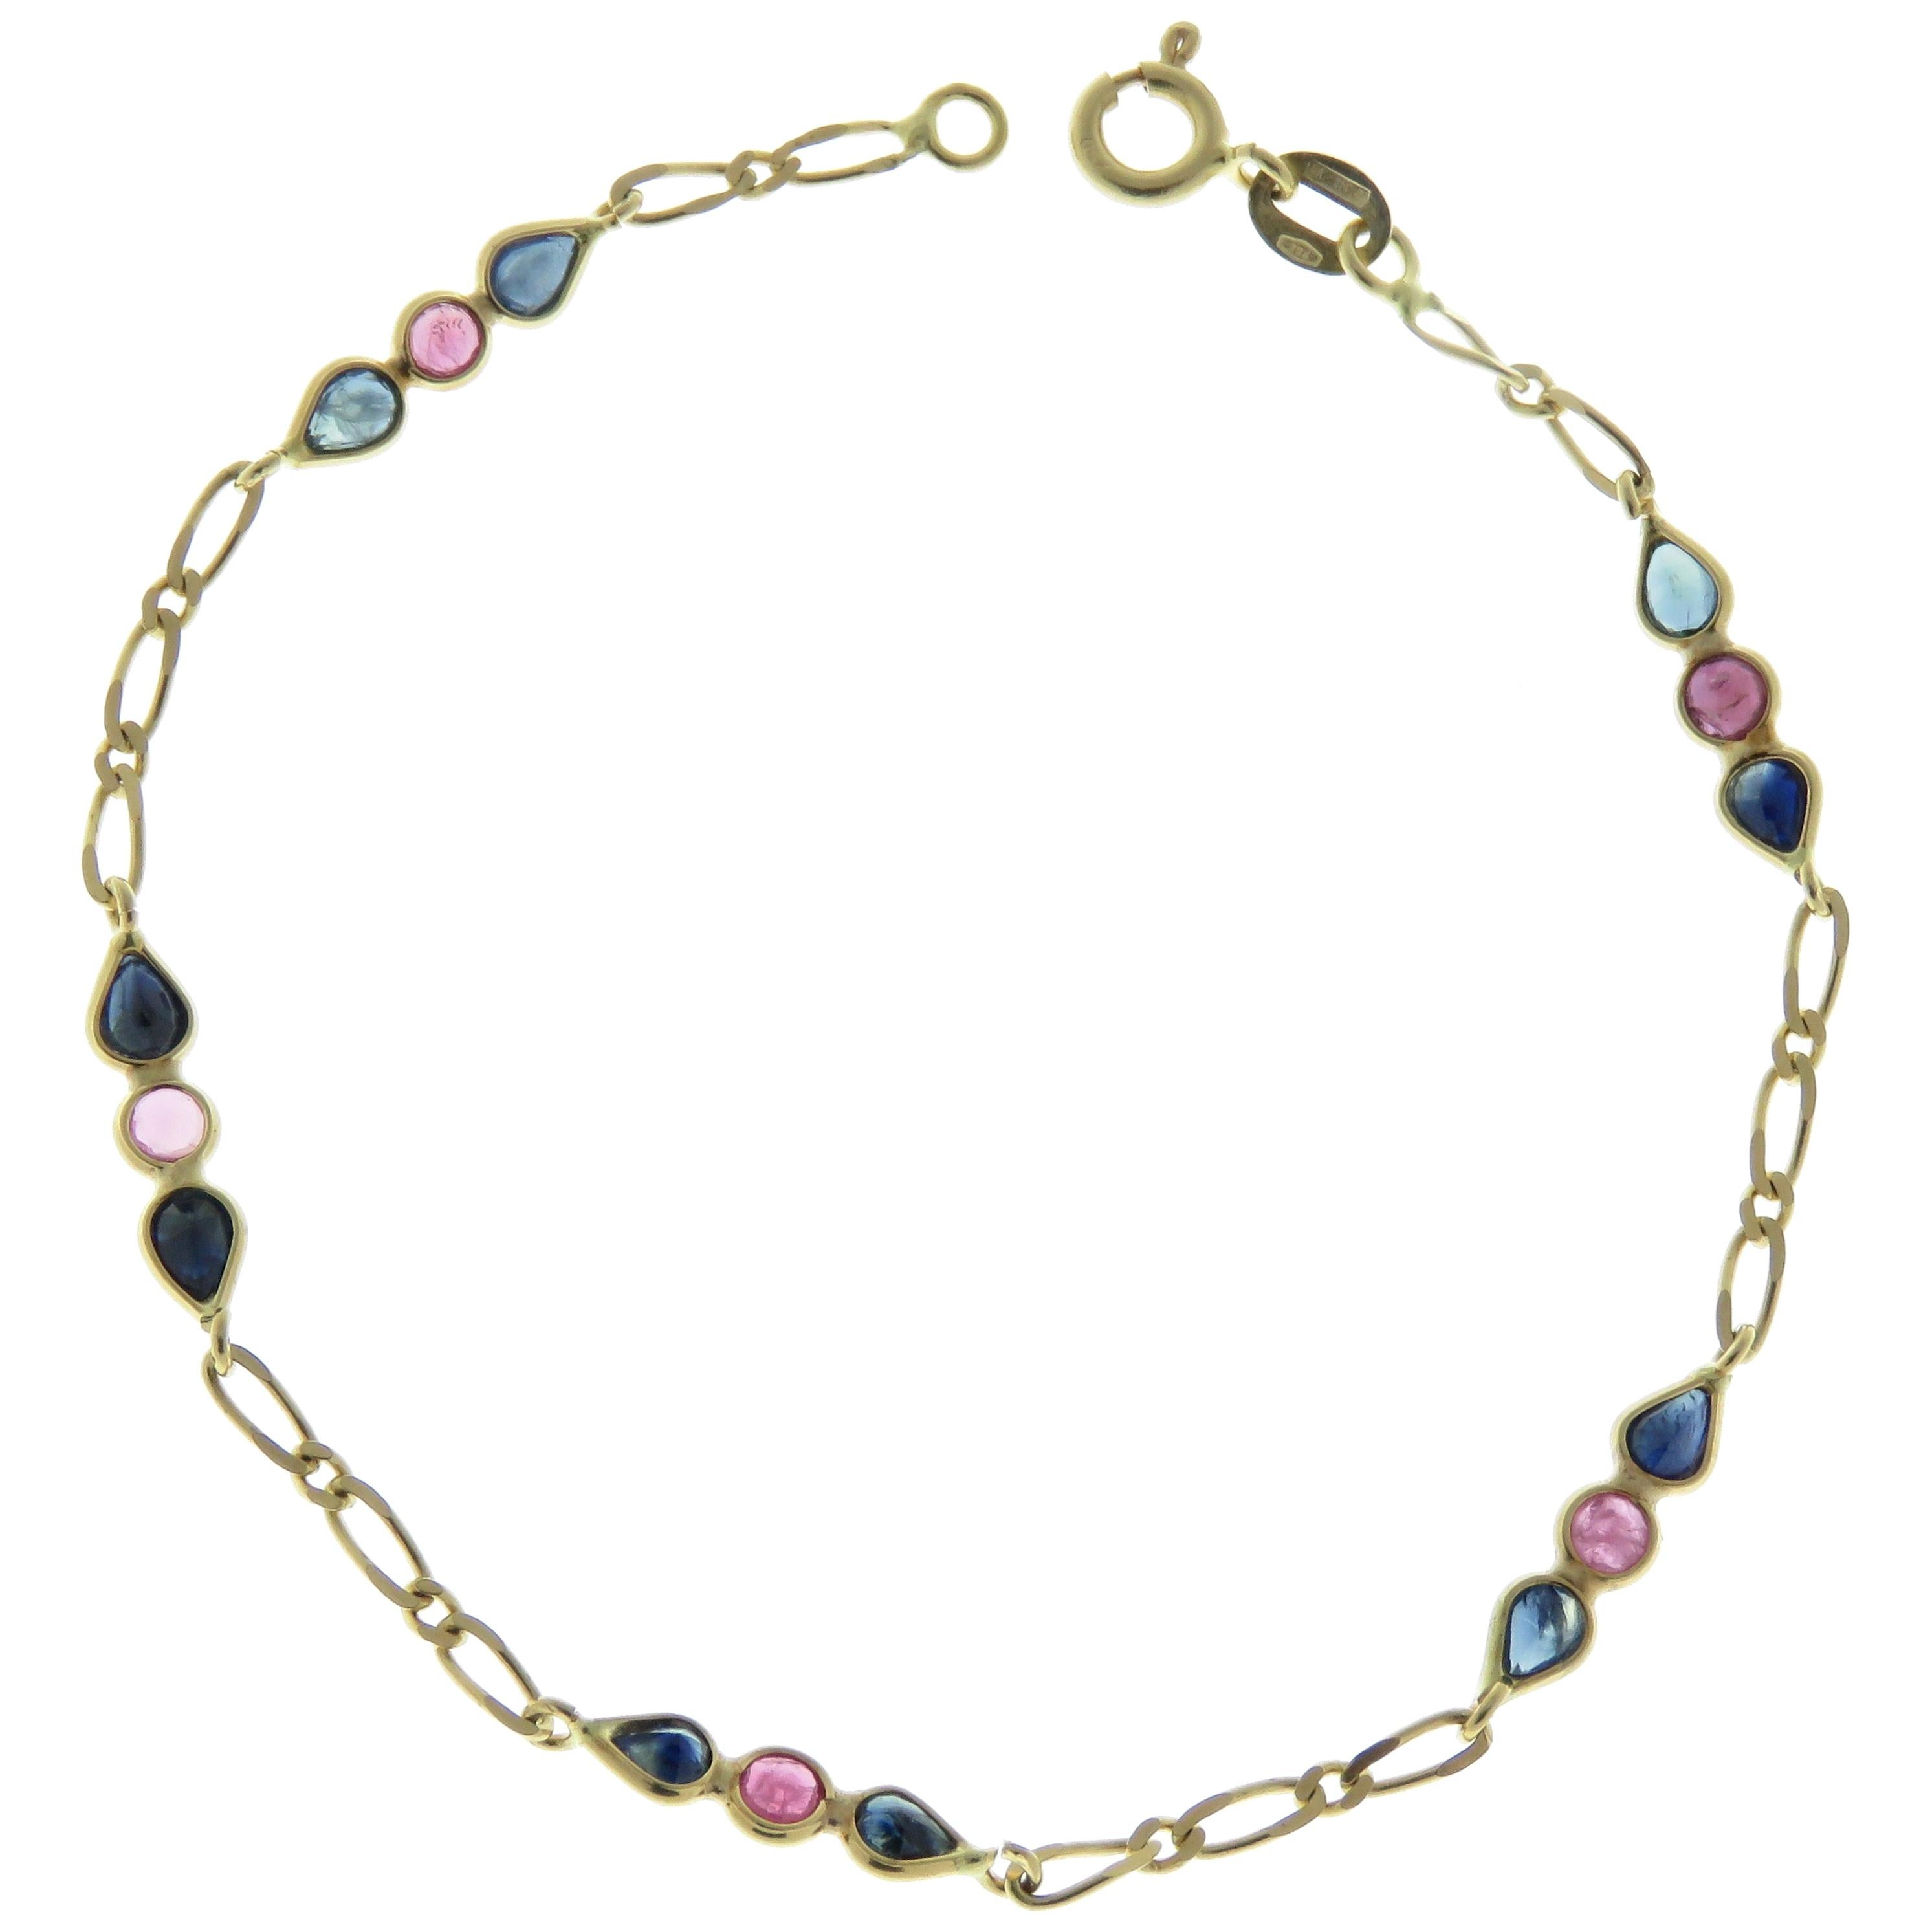 Sapphires Rubies 18 Karat Yellow Gold Bracelet Handcrafted in Italy